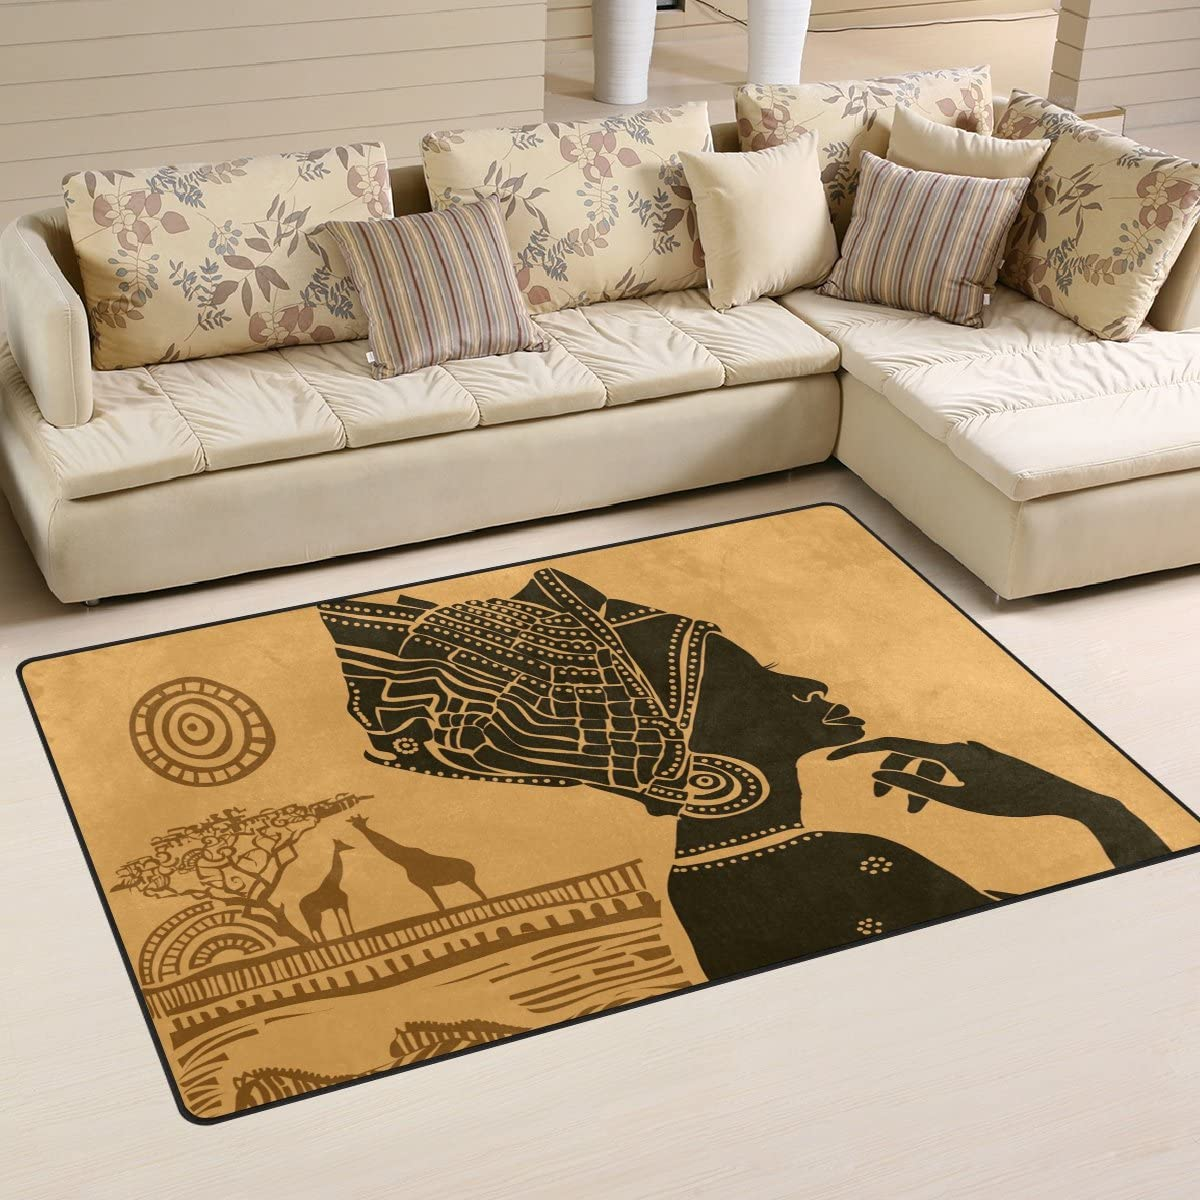 Yochoice Non-slip Area Rugs Home Decor, Vintage Retro African Black Woman Floor Mat Living Room Bedroom Carpets Doormats 60 x 39 inches